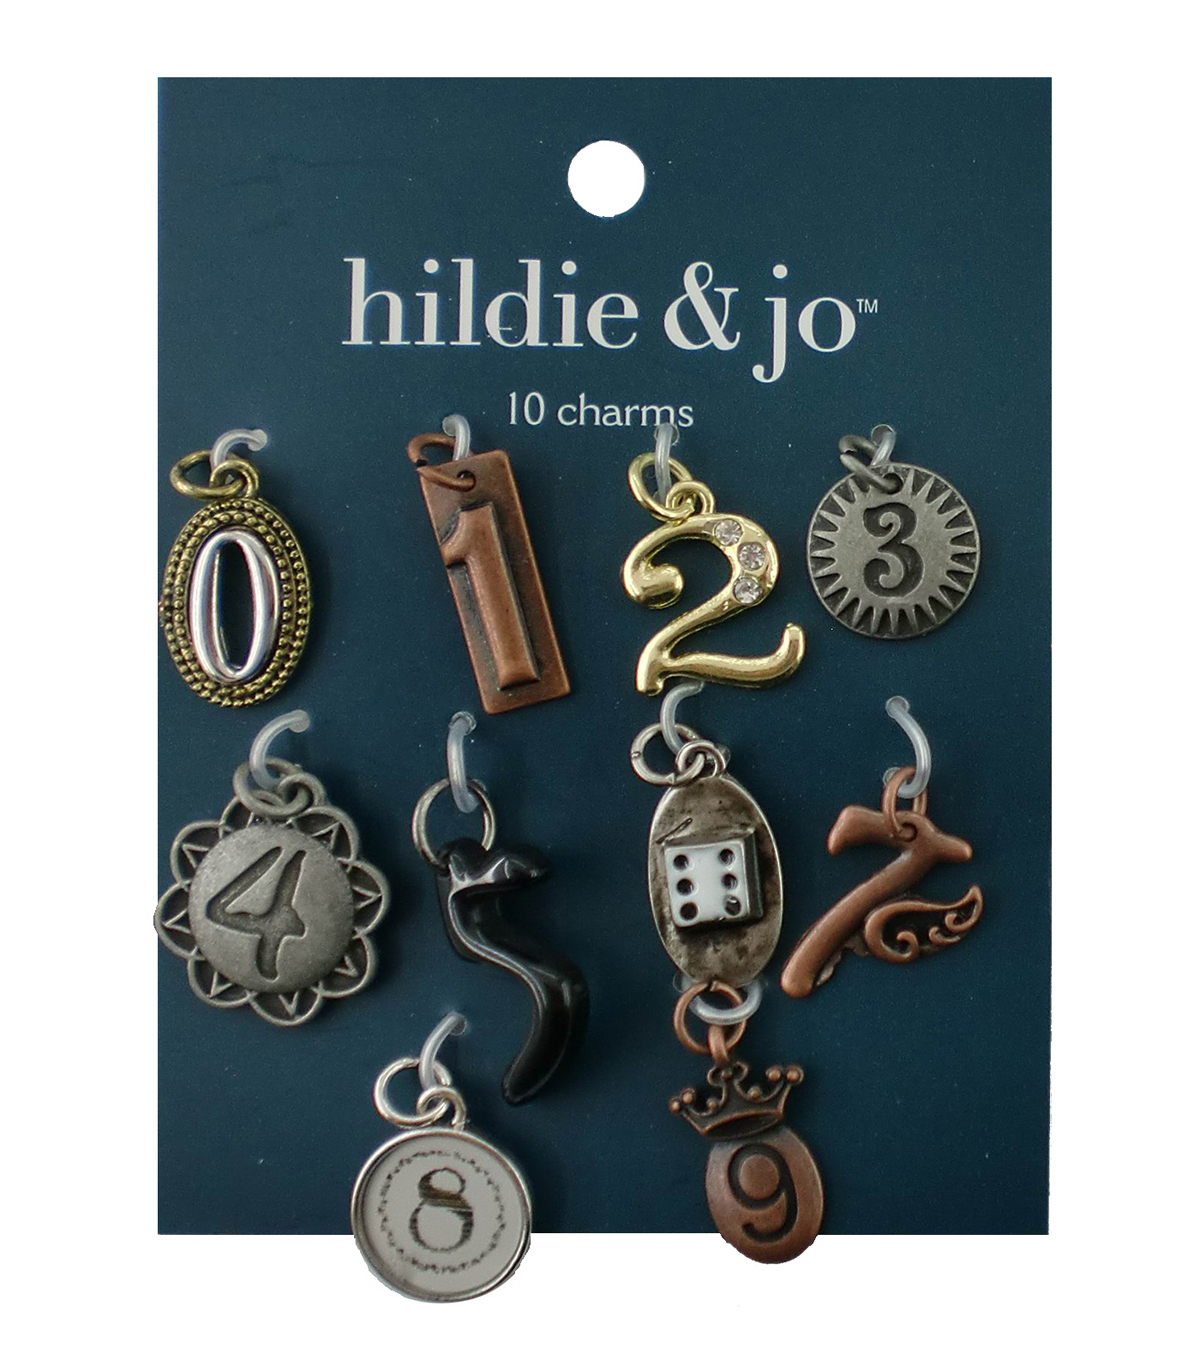 hildie & jo 10 Pack 0 thru 9 Number Charms-Multi